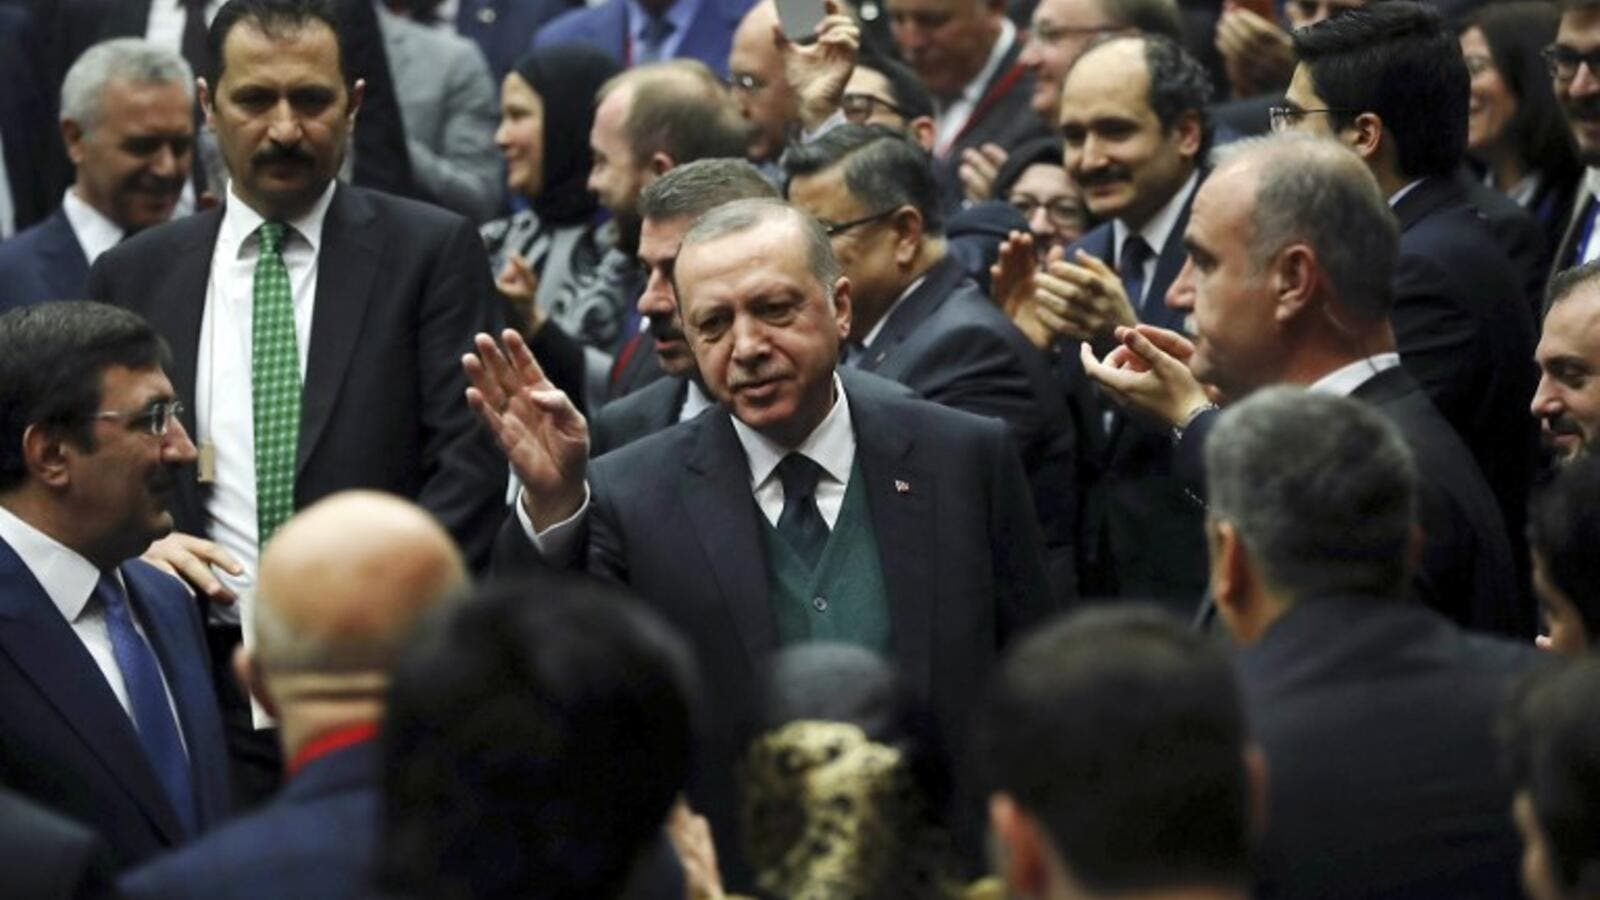 Turkish President Recep Tayyip Erdogan (C) greets the crowd during Turkey's ruling Justice and Development (AK) Party's provincial chairmen meeting at the party headquarters in Ankara on Mar. 30, 2018. 